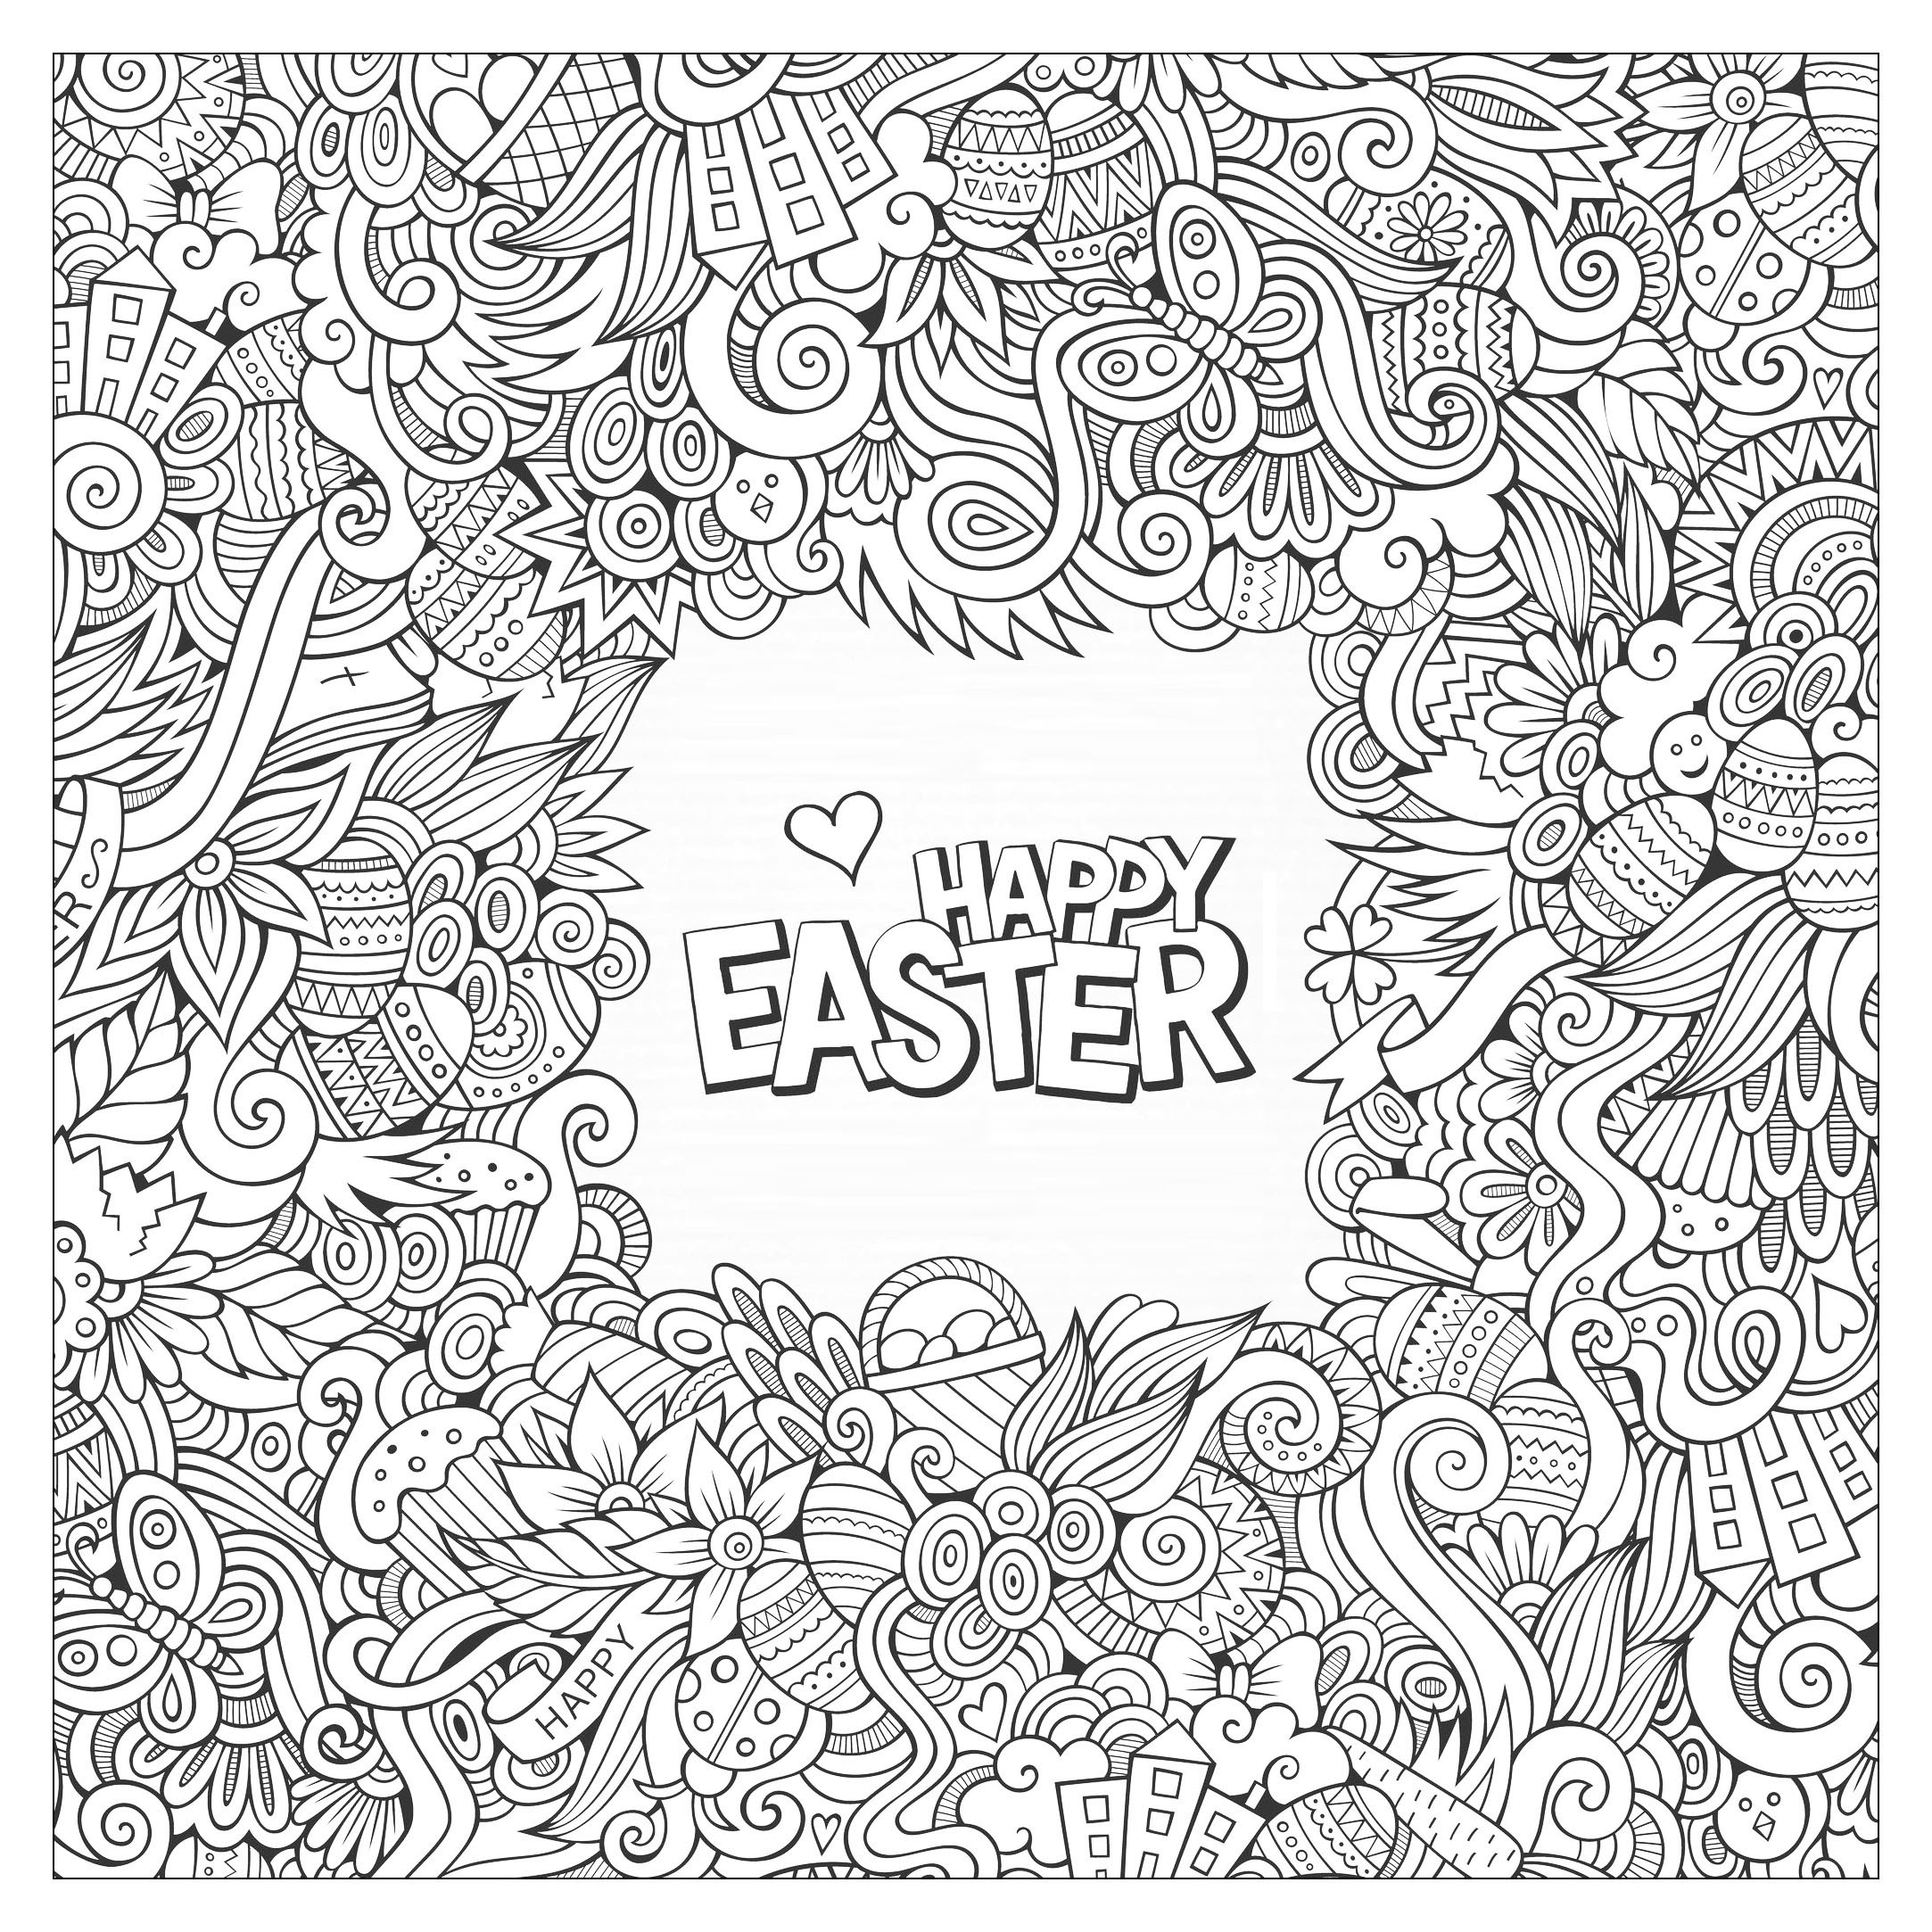 Coloring Pages For Adults: Easter Coloring Pages For Adults